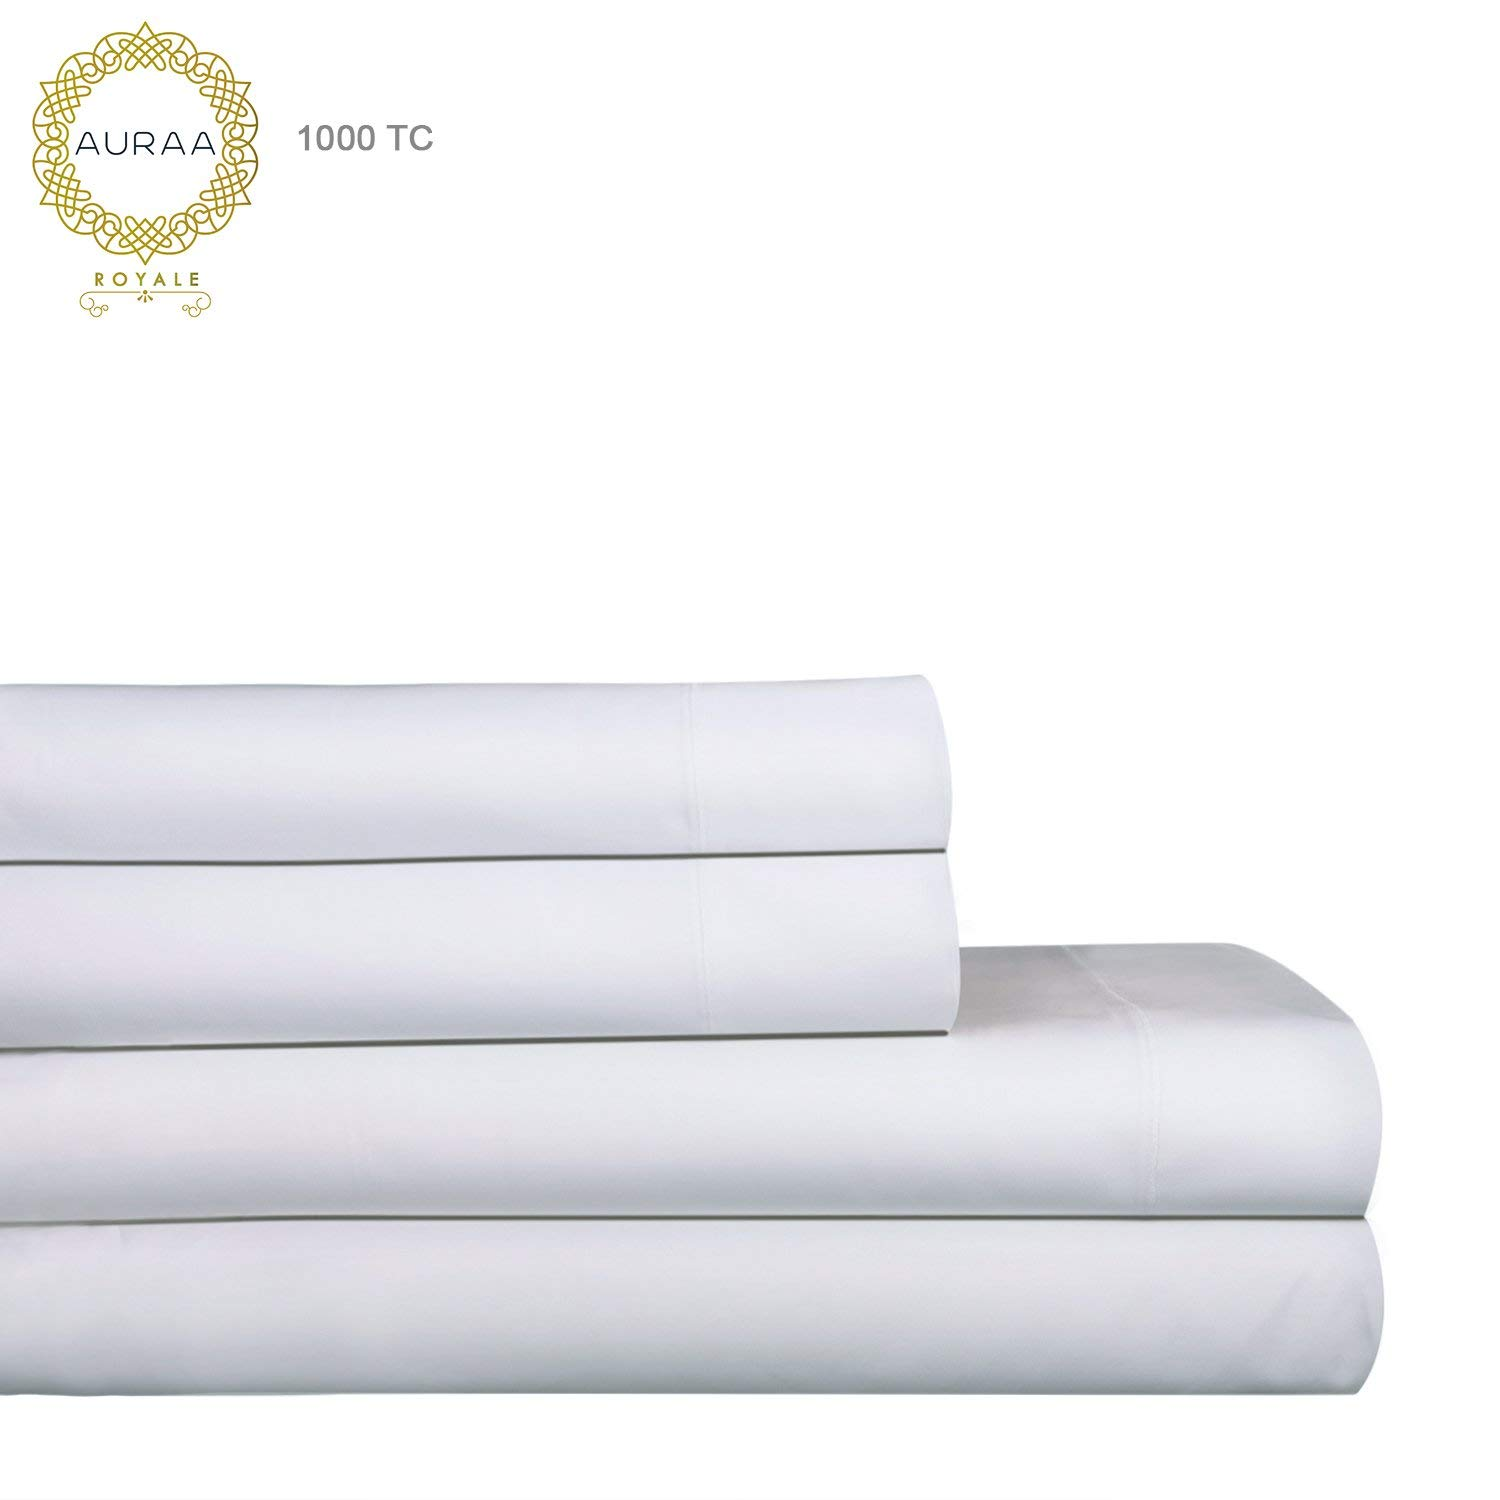 AURAA Royale 1000 Thread Count 100% American Supima Long Staple Cotton Sheet Set,4 Pc Set, King Sheets Sateen Weave,Hotel Collection Luxury Bedding,Upto 18'' Deep Pocket,White